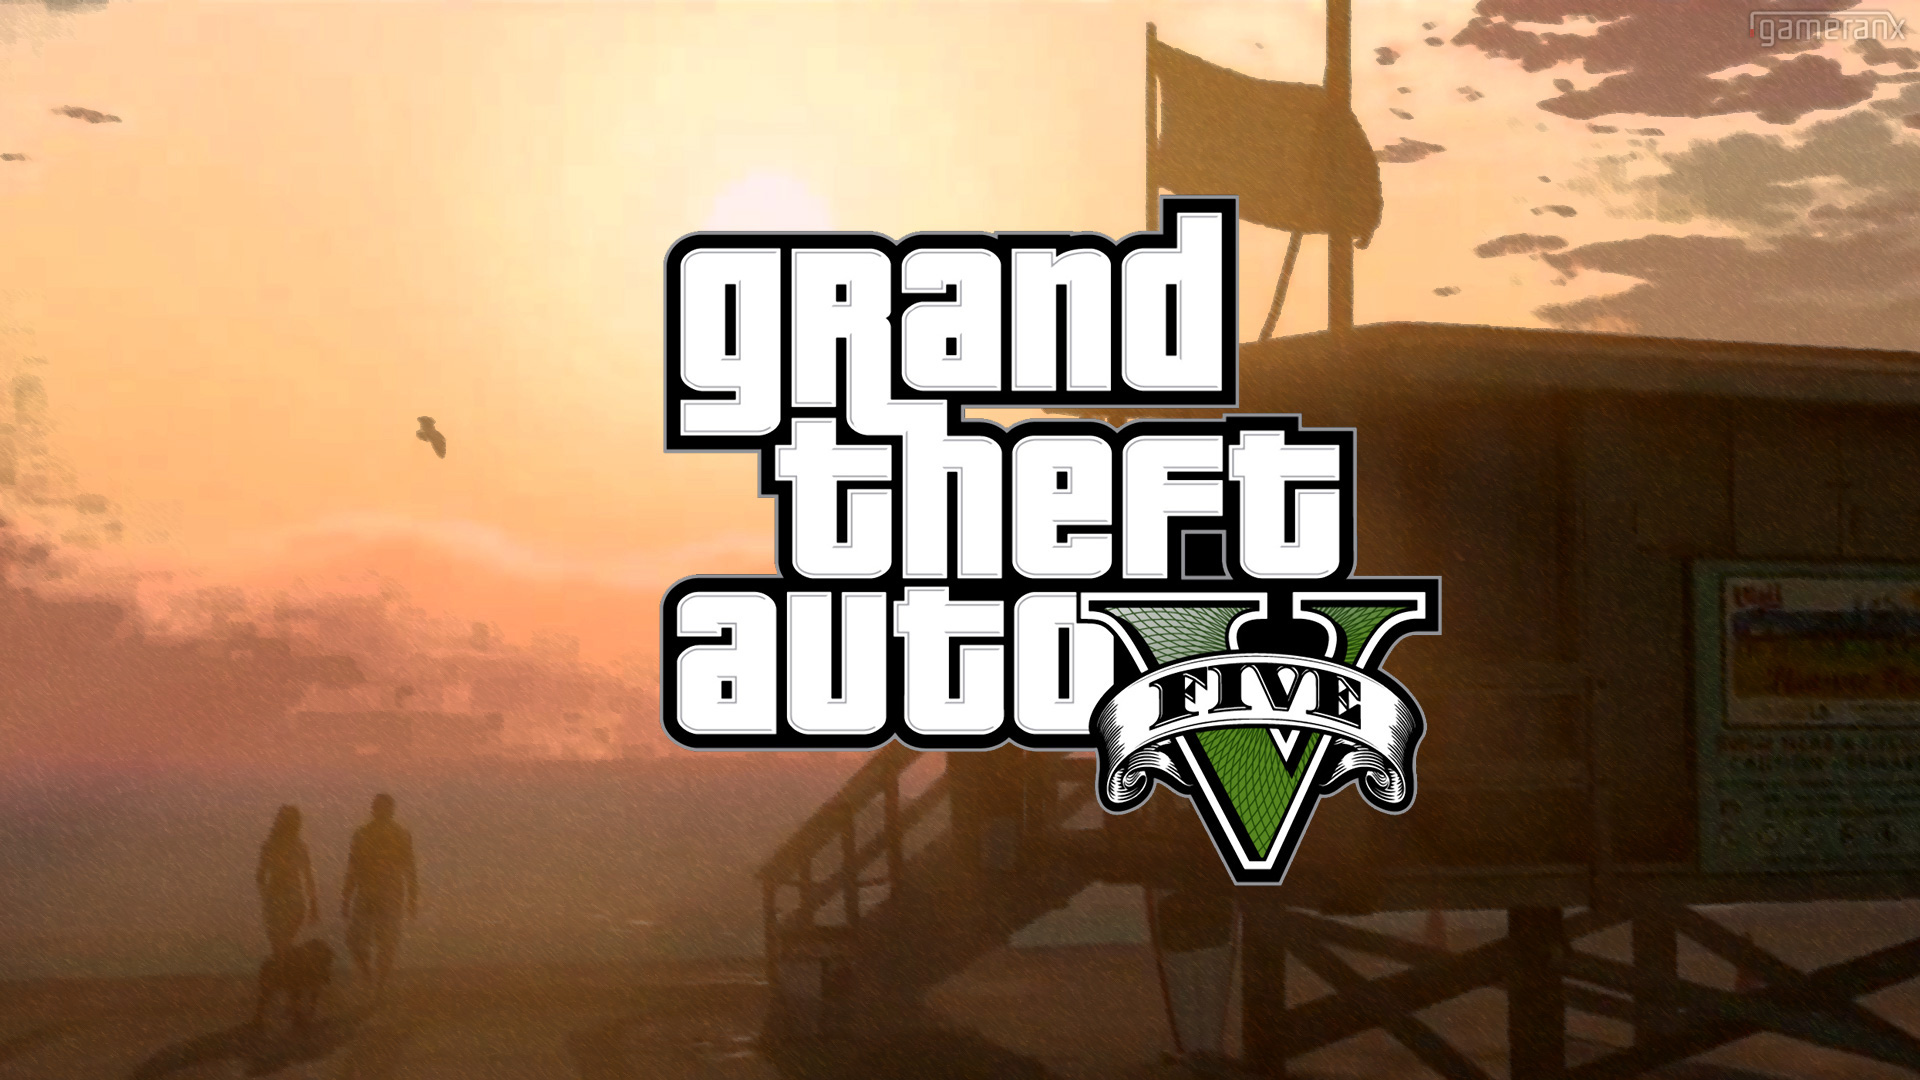 infowp contentuploads201111gta 5 wallpaper hd 3 1080pjpg 1920x1080